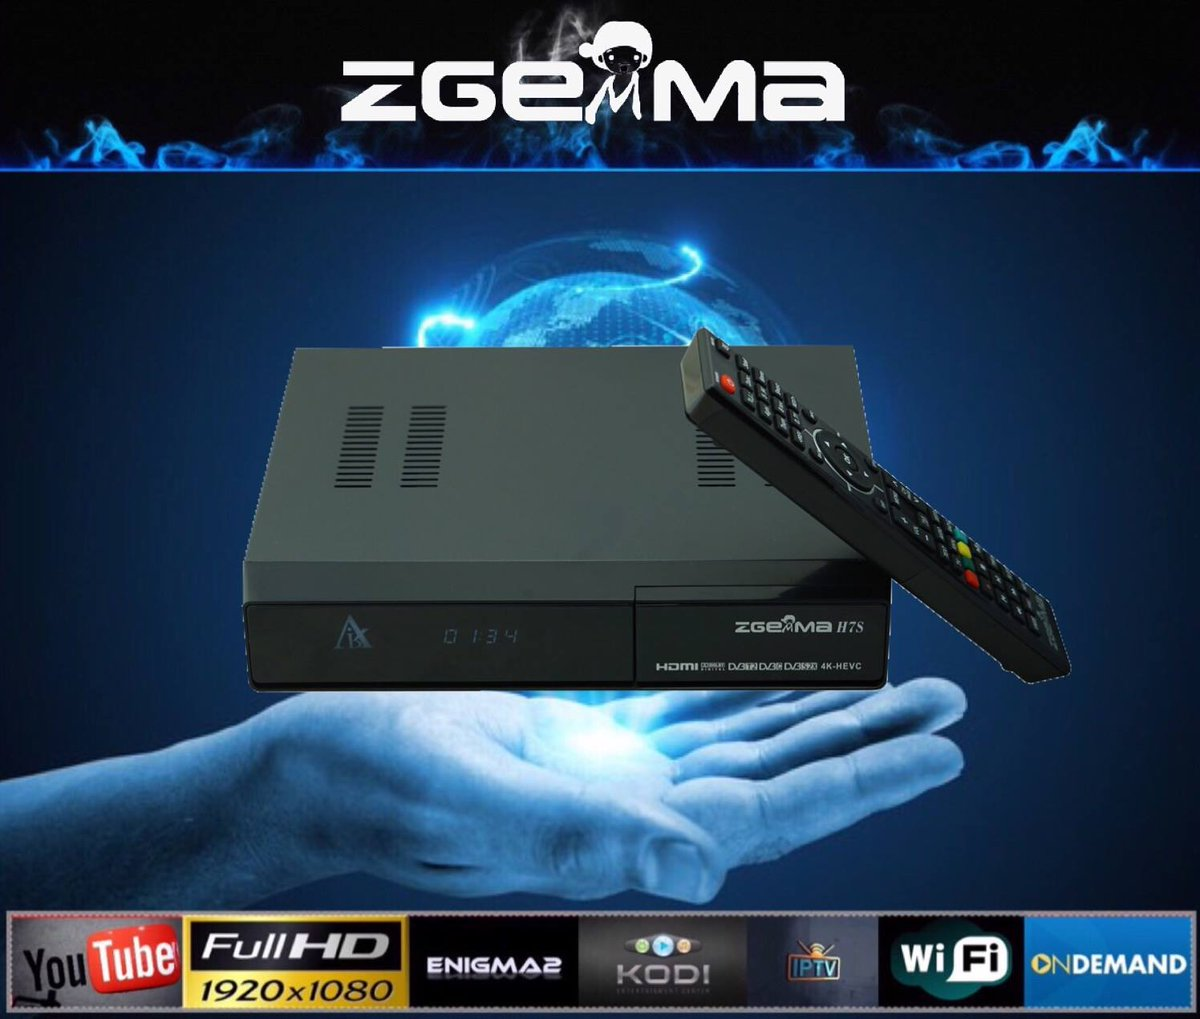 Dreambox Android XBMC on Twitter: